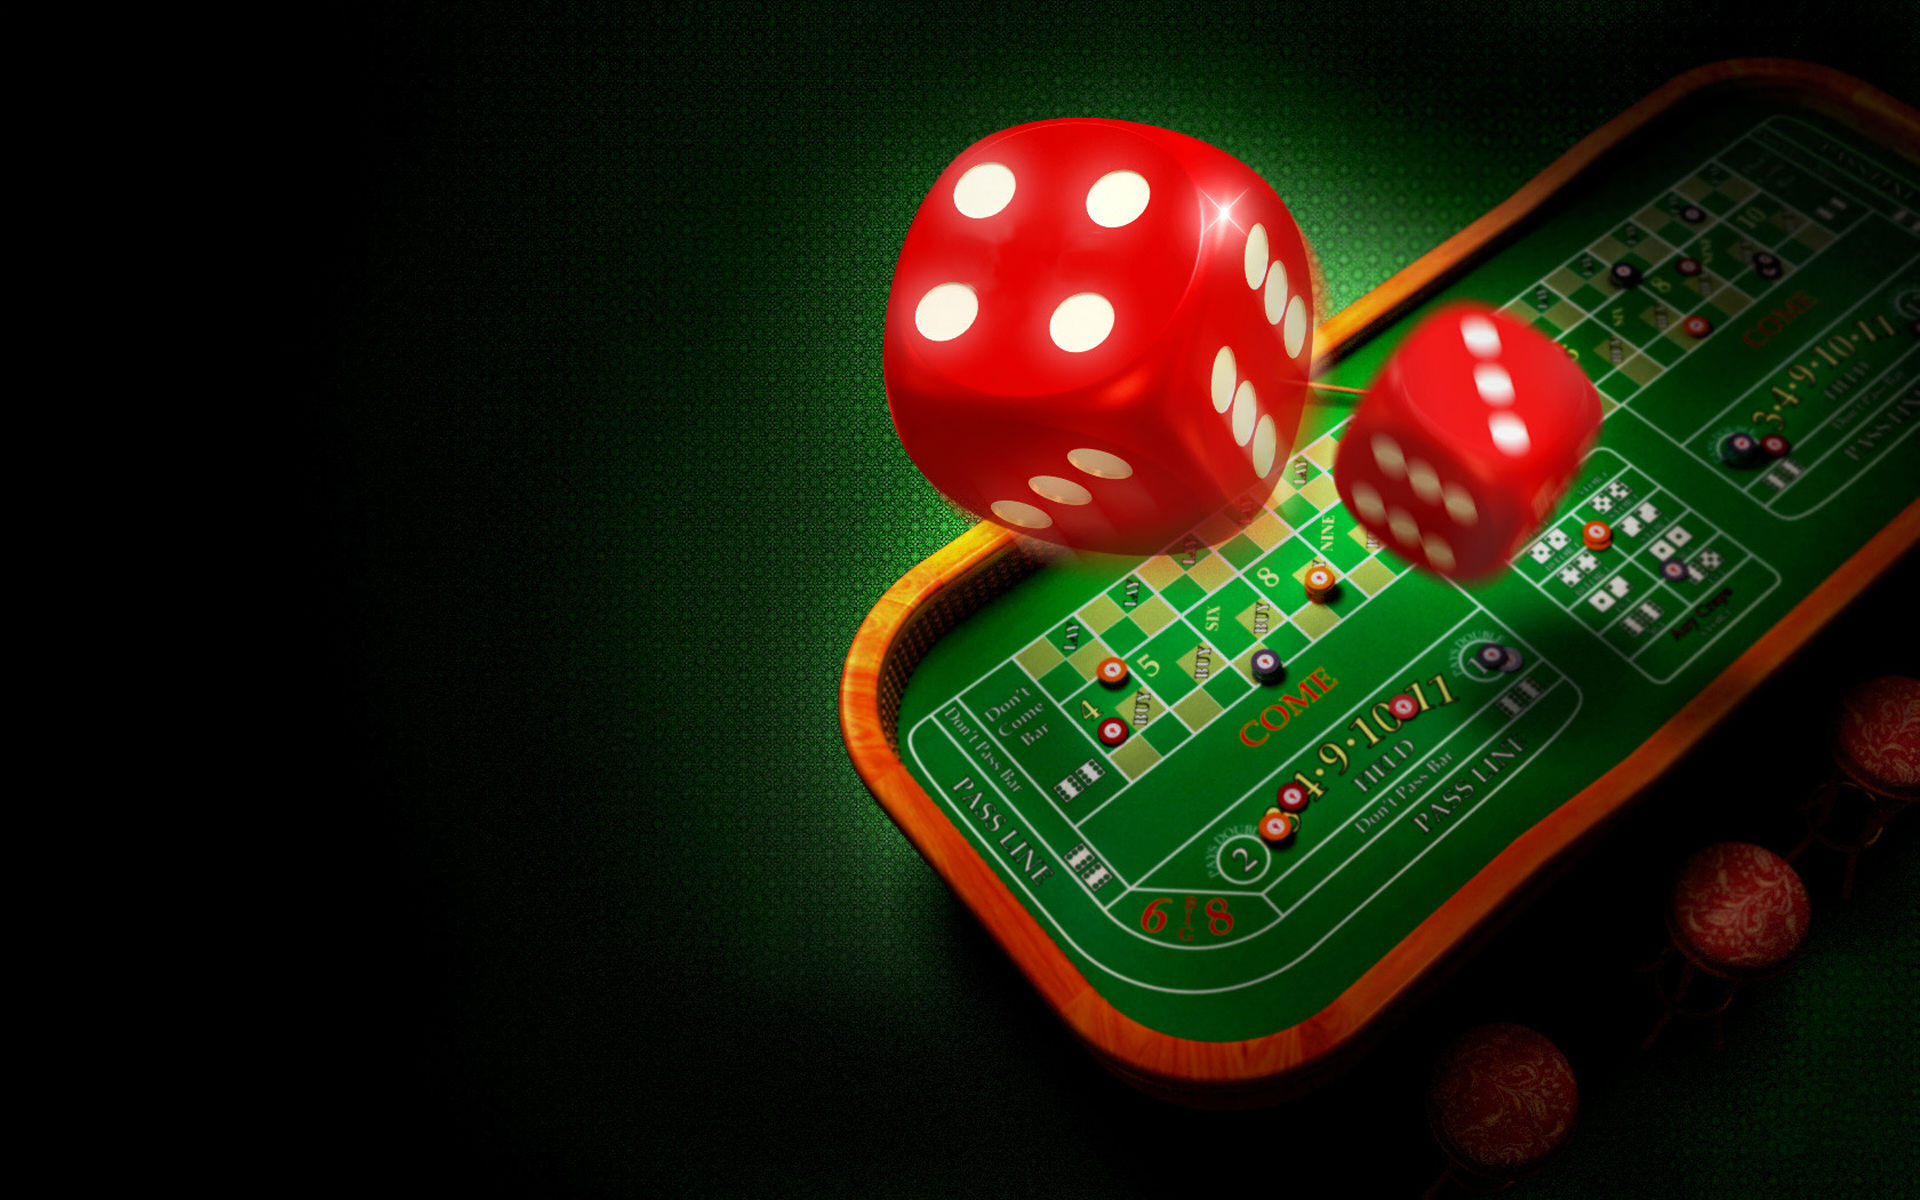 Online Slots - Play 250 Real Free Money Slot Machines